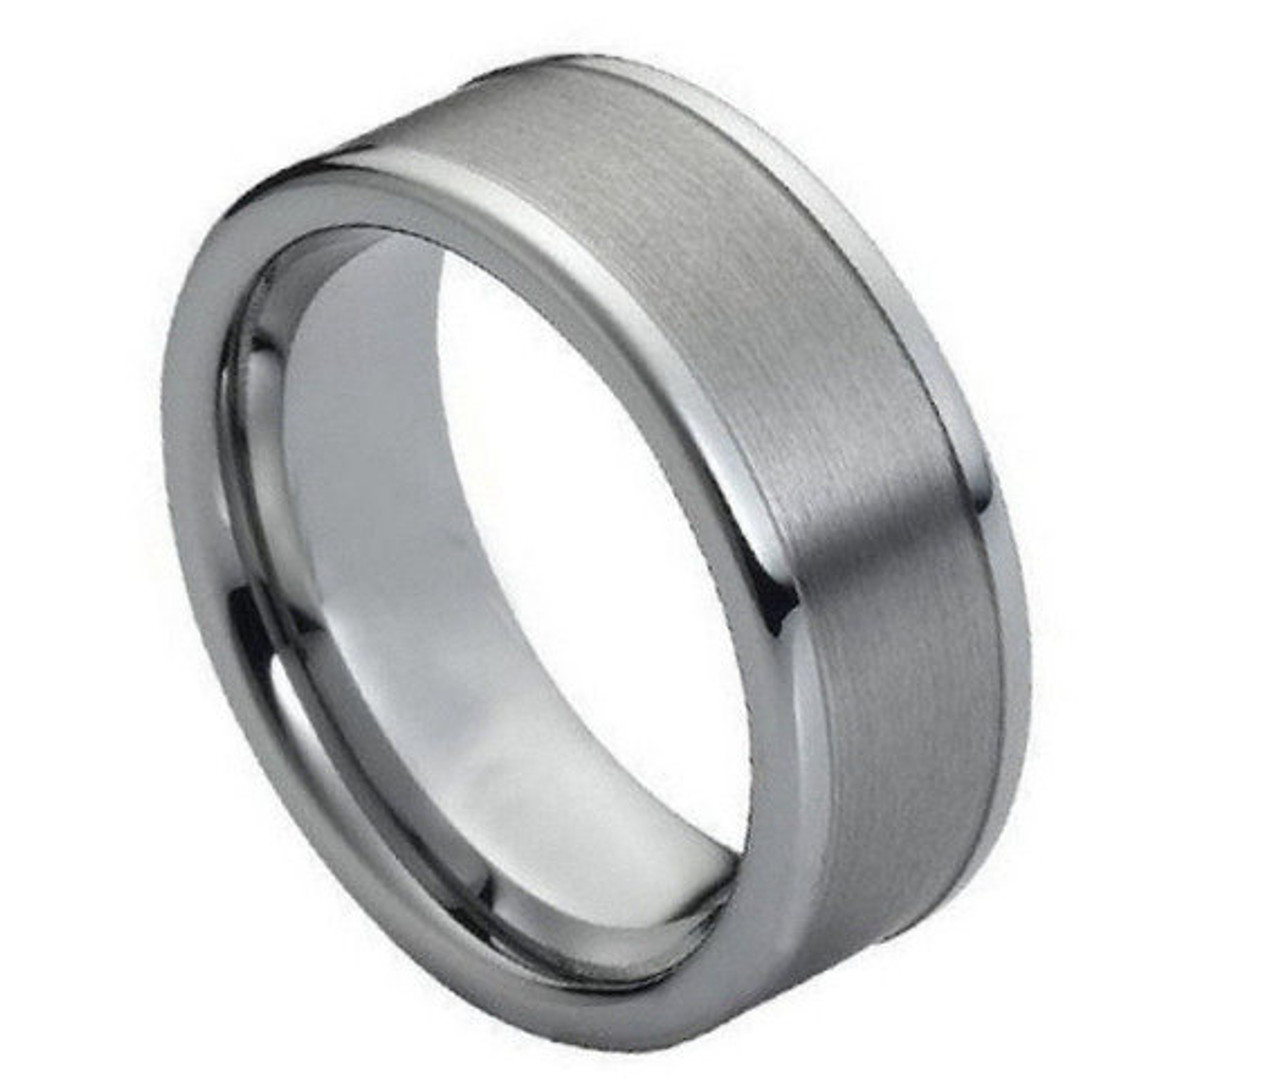 size 8 in Gift Box Highly Polished FACETED TUNGSTEN CARBIDE Wedding Band RING